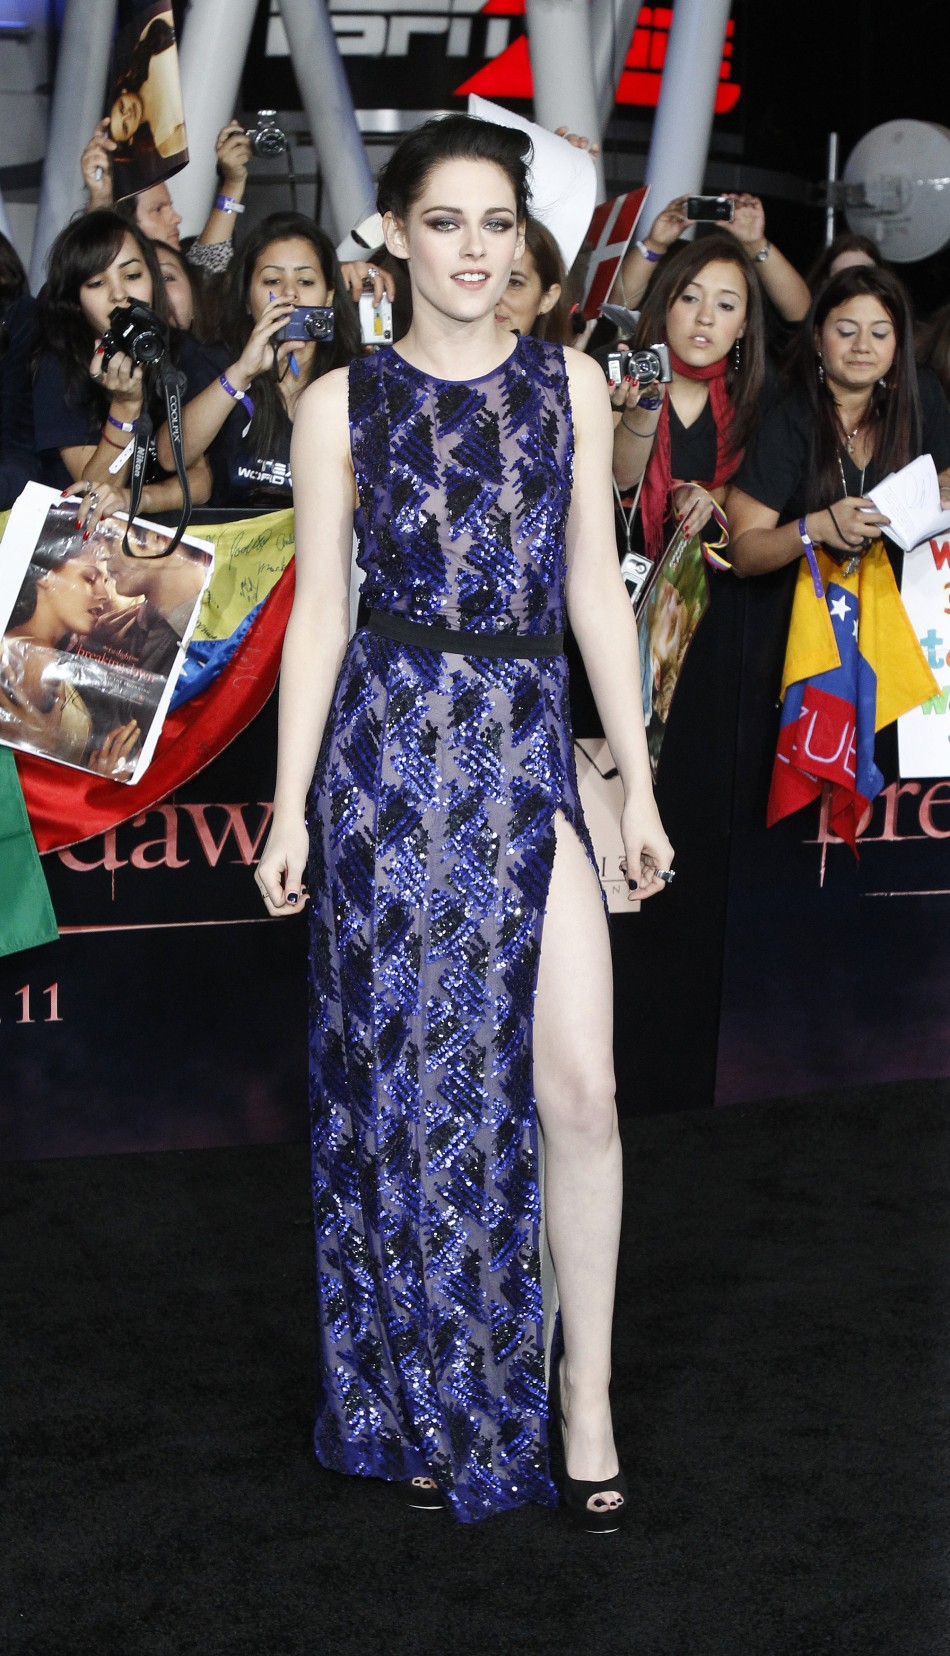 Stewart poses at the premiere of quotThe Twilight Saga Breaking Dawn - Part 1quot in Los Angeles